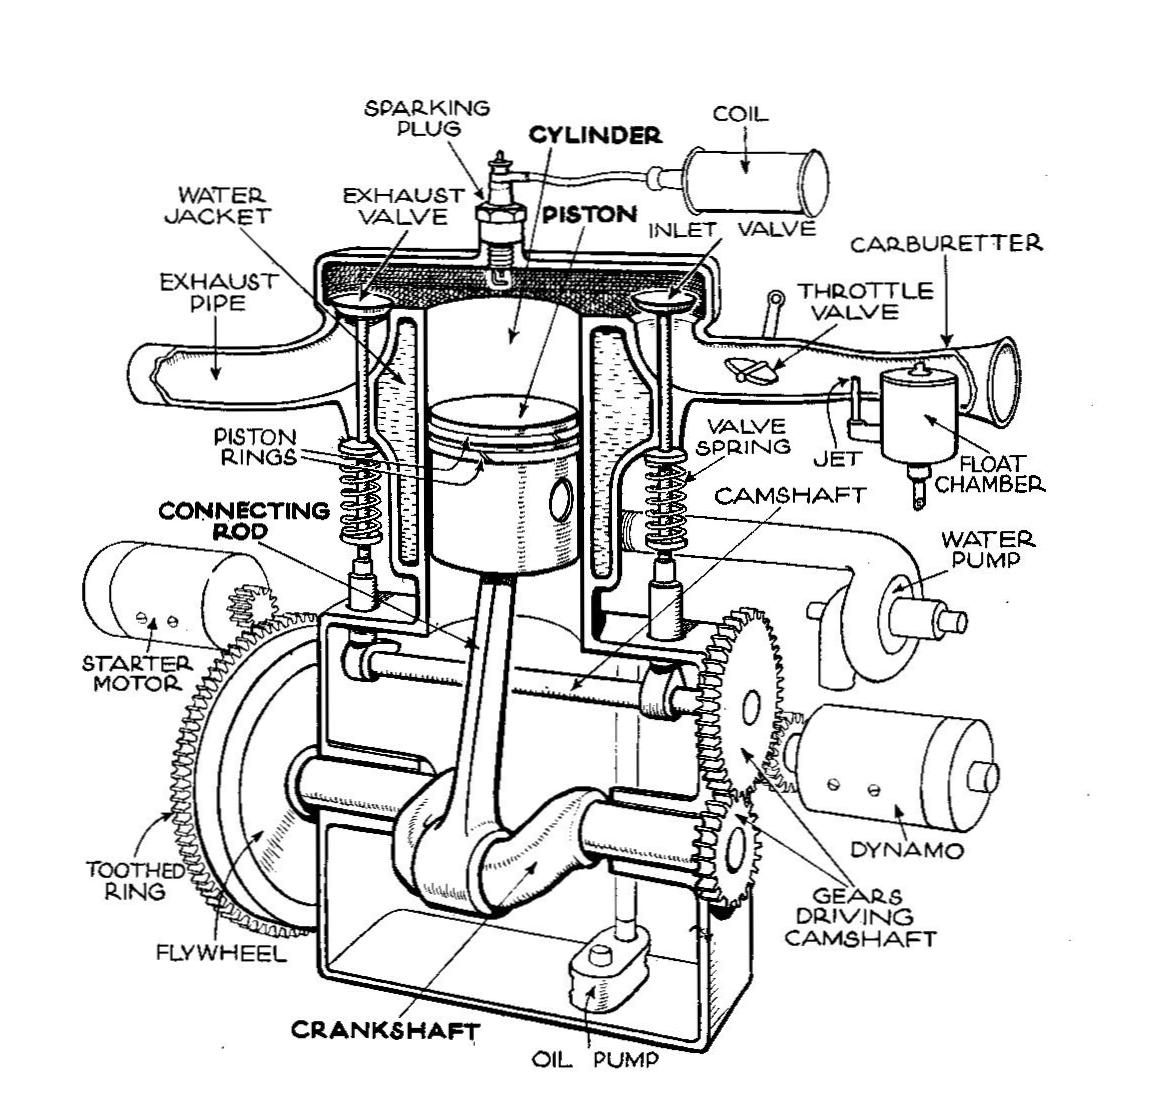 Flathead engine - Wikipedia on basic ignition wiring diagram, inline 2 cylinder engine diagram, basic internal combustion engine, basic car engine, 4 stroke engine diagram, basic diesel engine operation, 1995 6 cylinder engine diagram, basic diesel engine diagram, basic small engine diagram, stroke of the four cylinder engine diagram, 4 cycle engine diagram, basic engine parts, basic 4 stroke engine design, single cylinder engine diagram, basic motorcycle wiring diagram, basic gas engine diagram, 2 cylinder 4 piston motor diagram, motorcycle basic engine diagram, working engine cylinder diagram, basic car diagram,